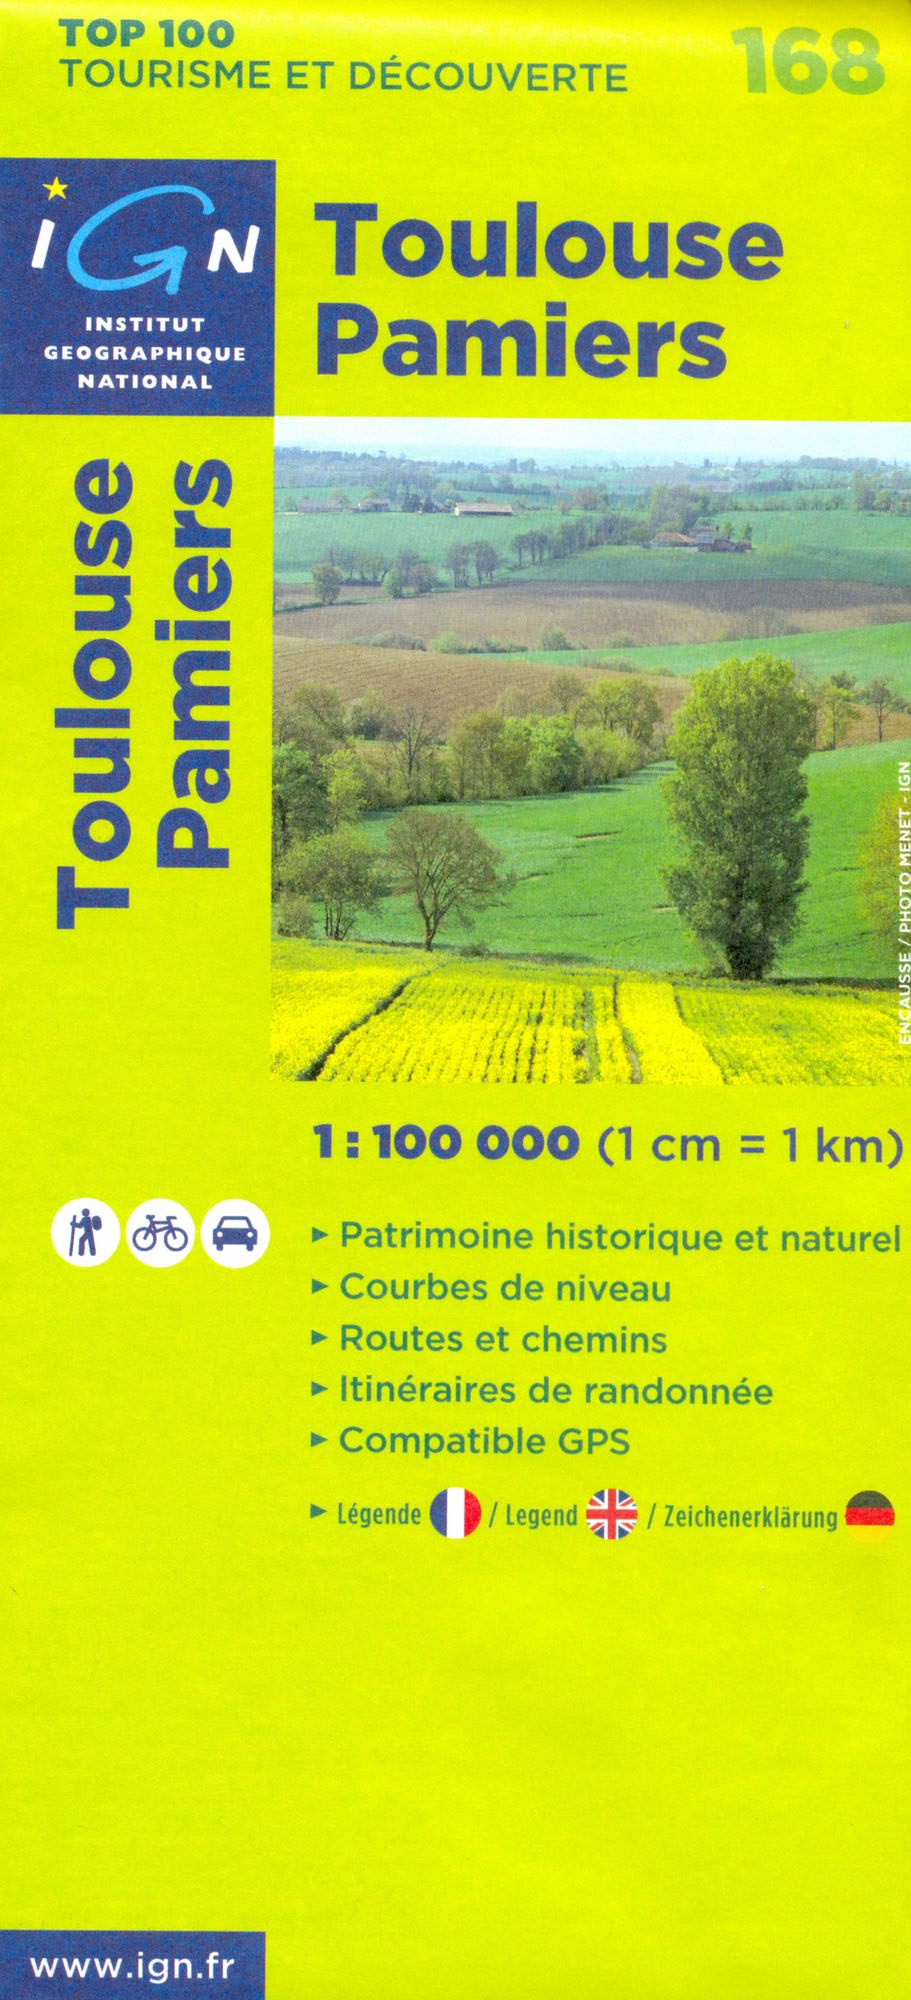 IGN 168 Toulouse Pamiers 1:100t mapa IGN